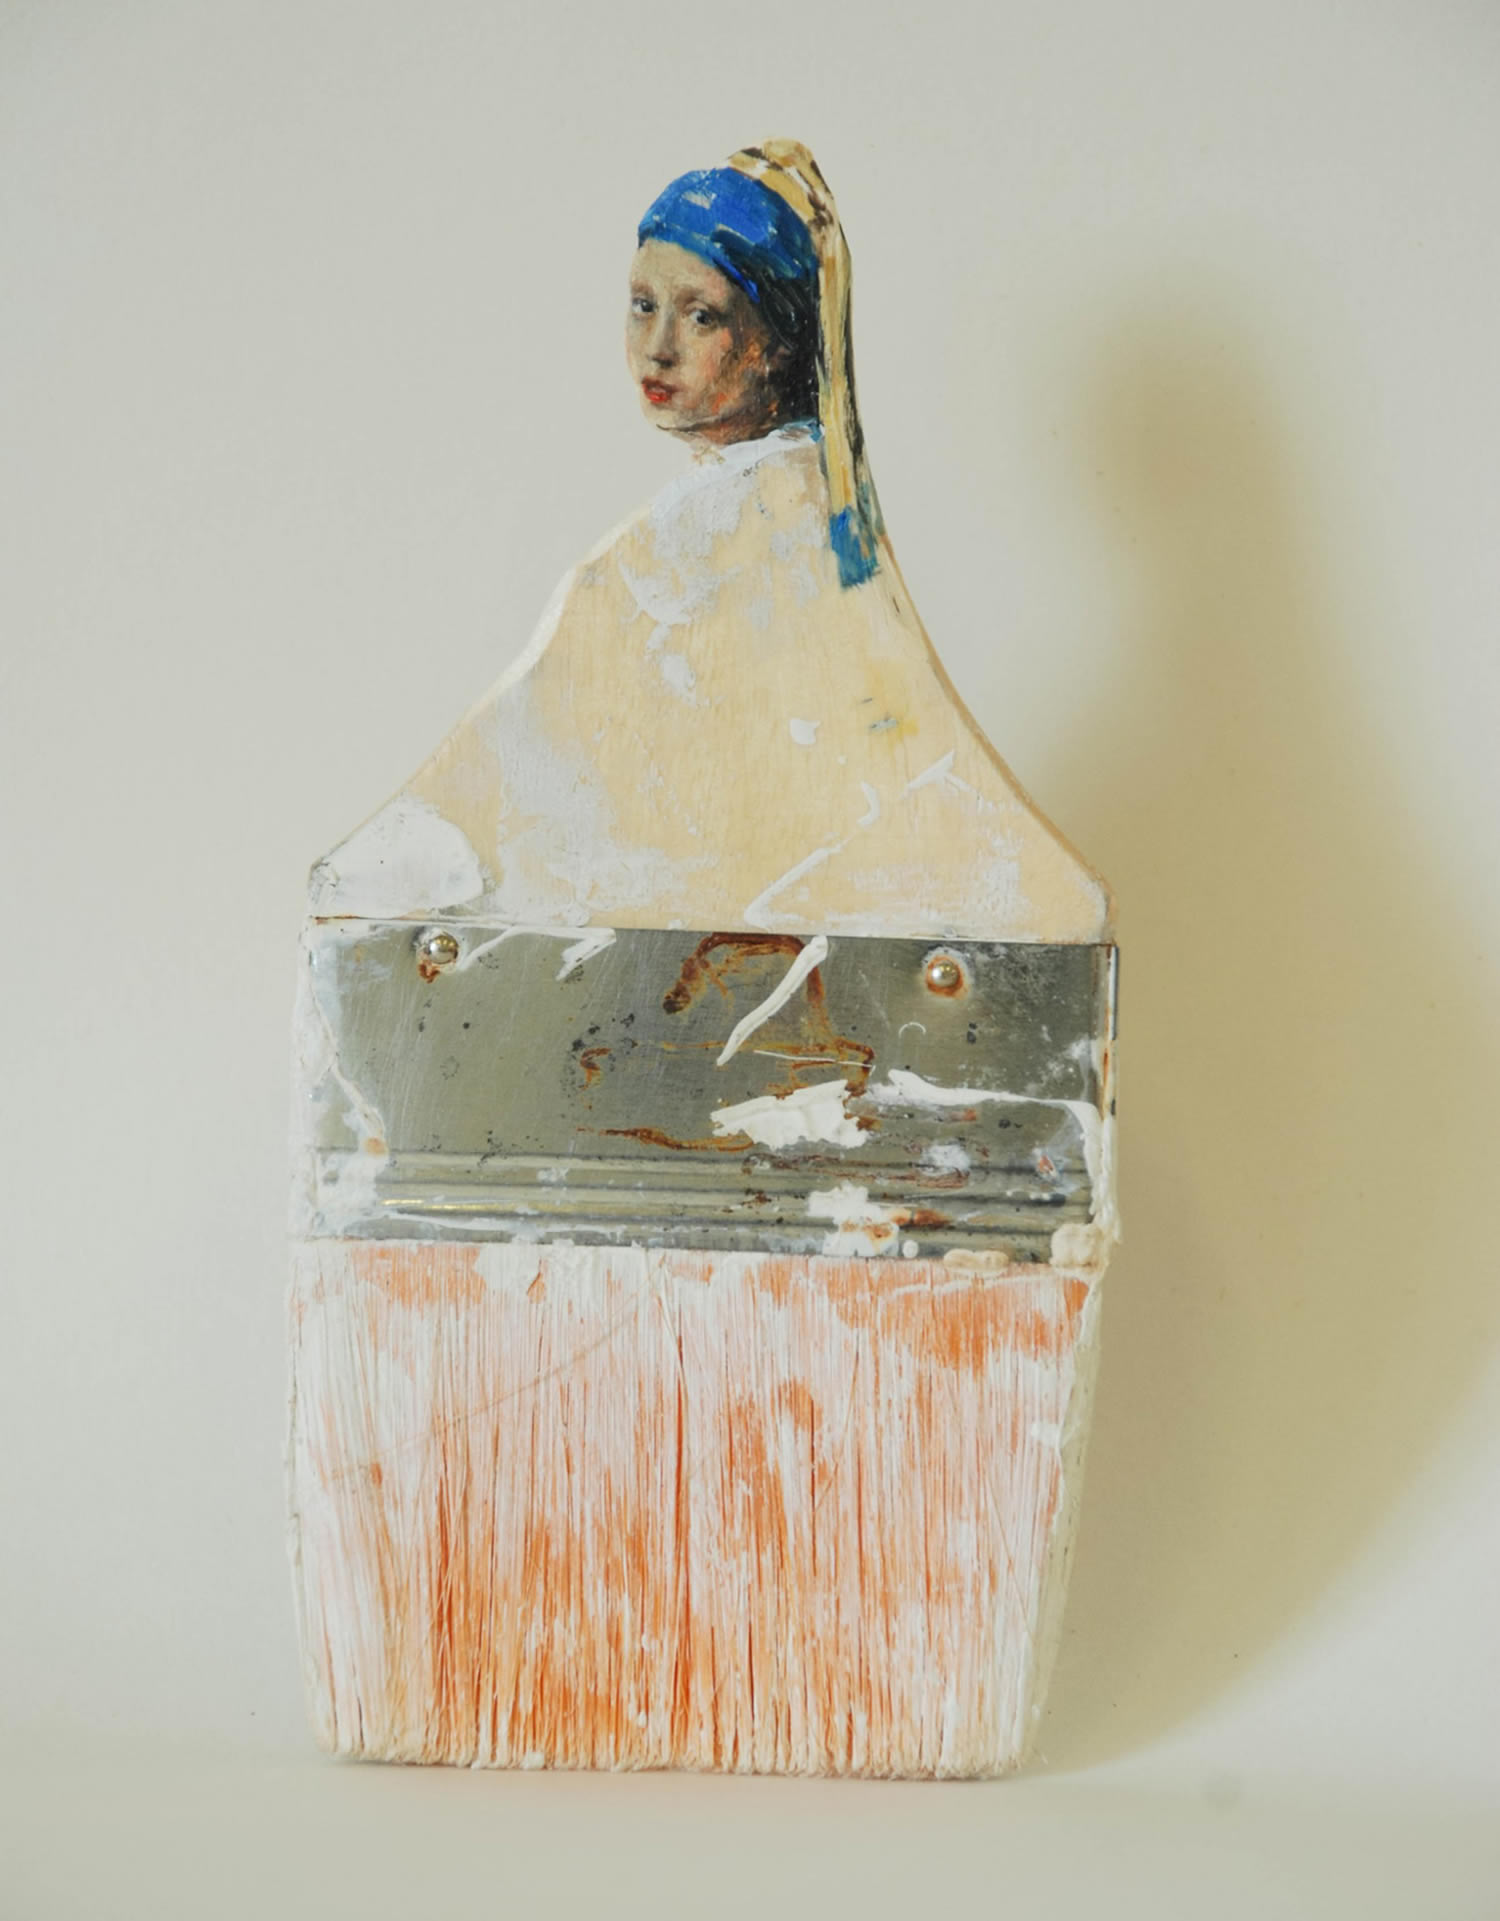 girl with the pearl earring, paintbrush portrait by Rebecca Szeto